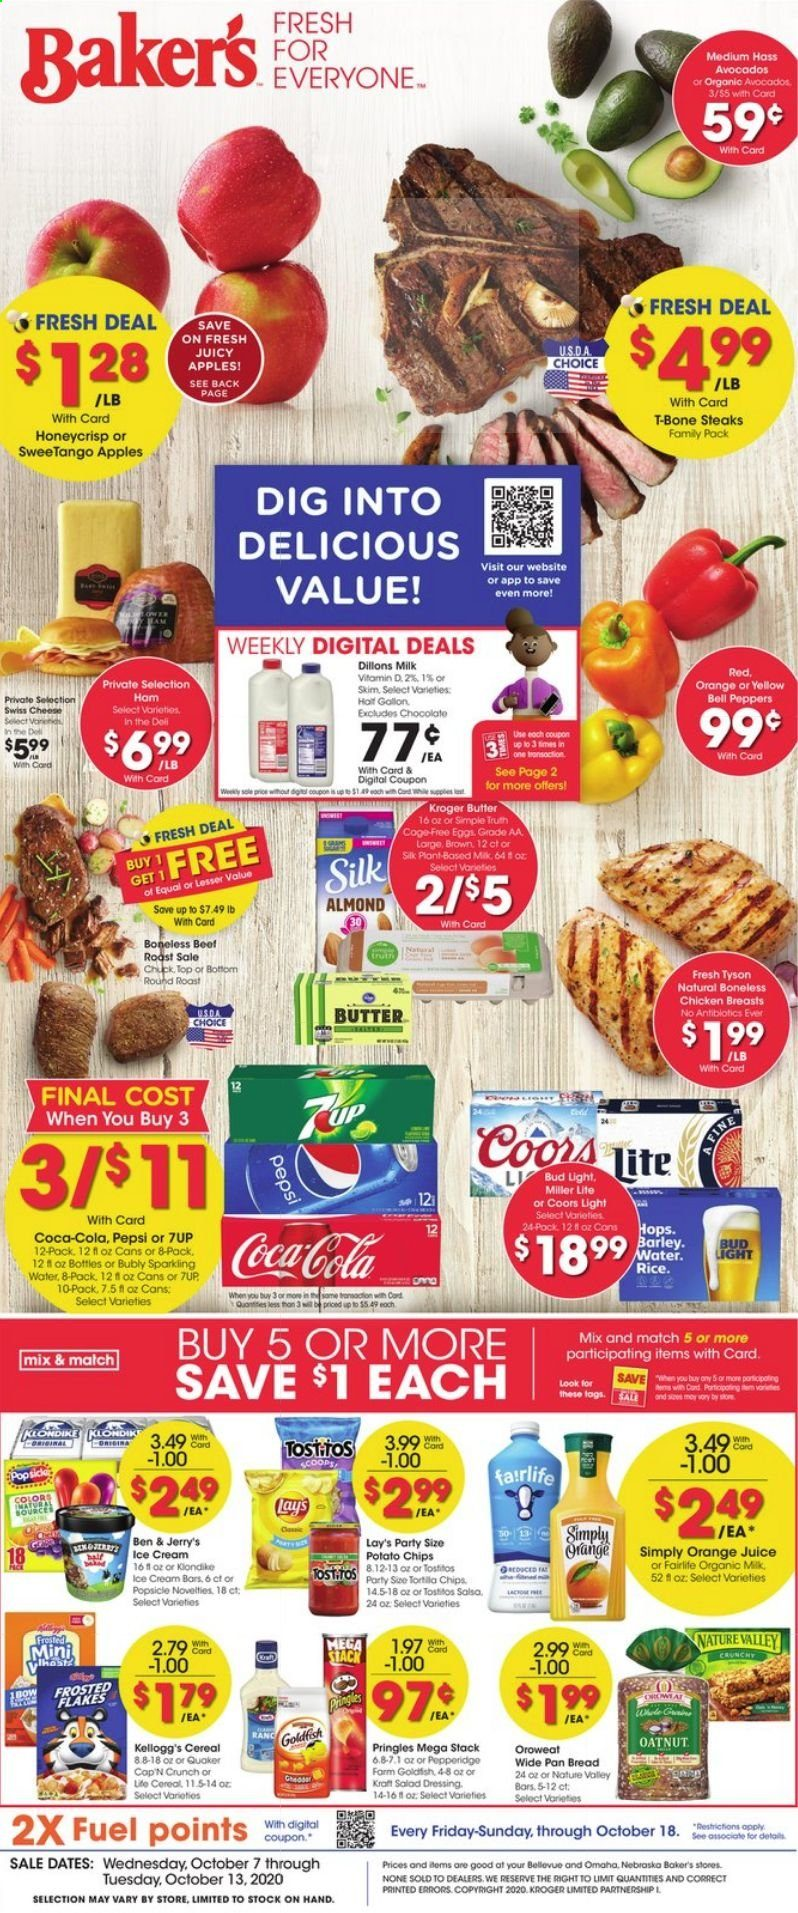 Baker's Flyer - 10.07.2020 - 10.13.2020 - Sales products - apples, avocado, barley, beef meat, beef roast, bell peppers, bottom, bread, butter, cap, cereals, coca-cola, dates, dolce & gabbana, eggs, fuel, miller lite, rice, salad dressing, sole, swiss cheese, t-bone steak, ham, ice cream, potato chips, pringles, chicken, chicken breast, pan, pepsi, orange juice, orange, organic, chips, chocolate, organic milk, cheese, juice, dressing, sparkling water, salsa, cereal, bud light, lay's, salad, ups, miller, coors, peppers, roast, family pack, apple, chicken breasts. Page 1.